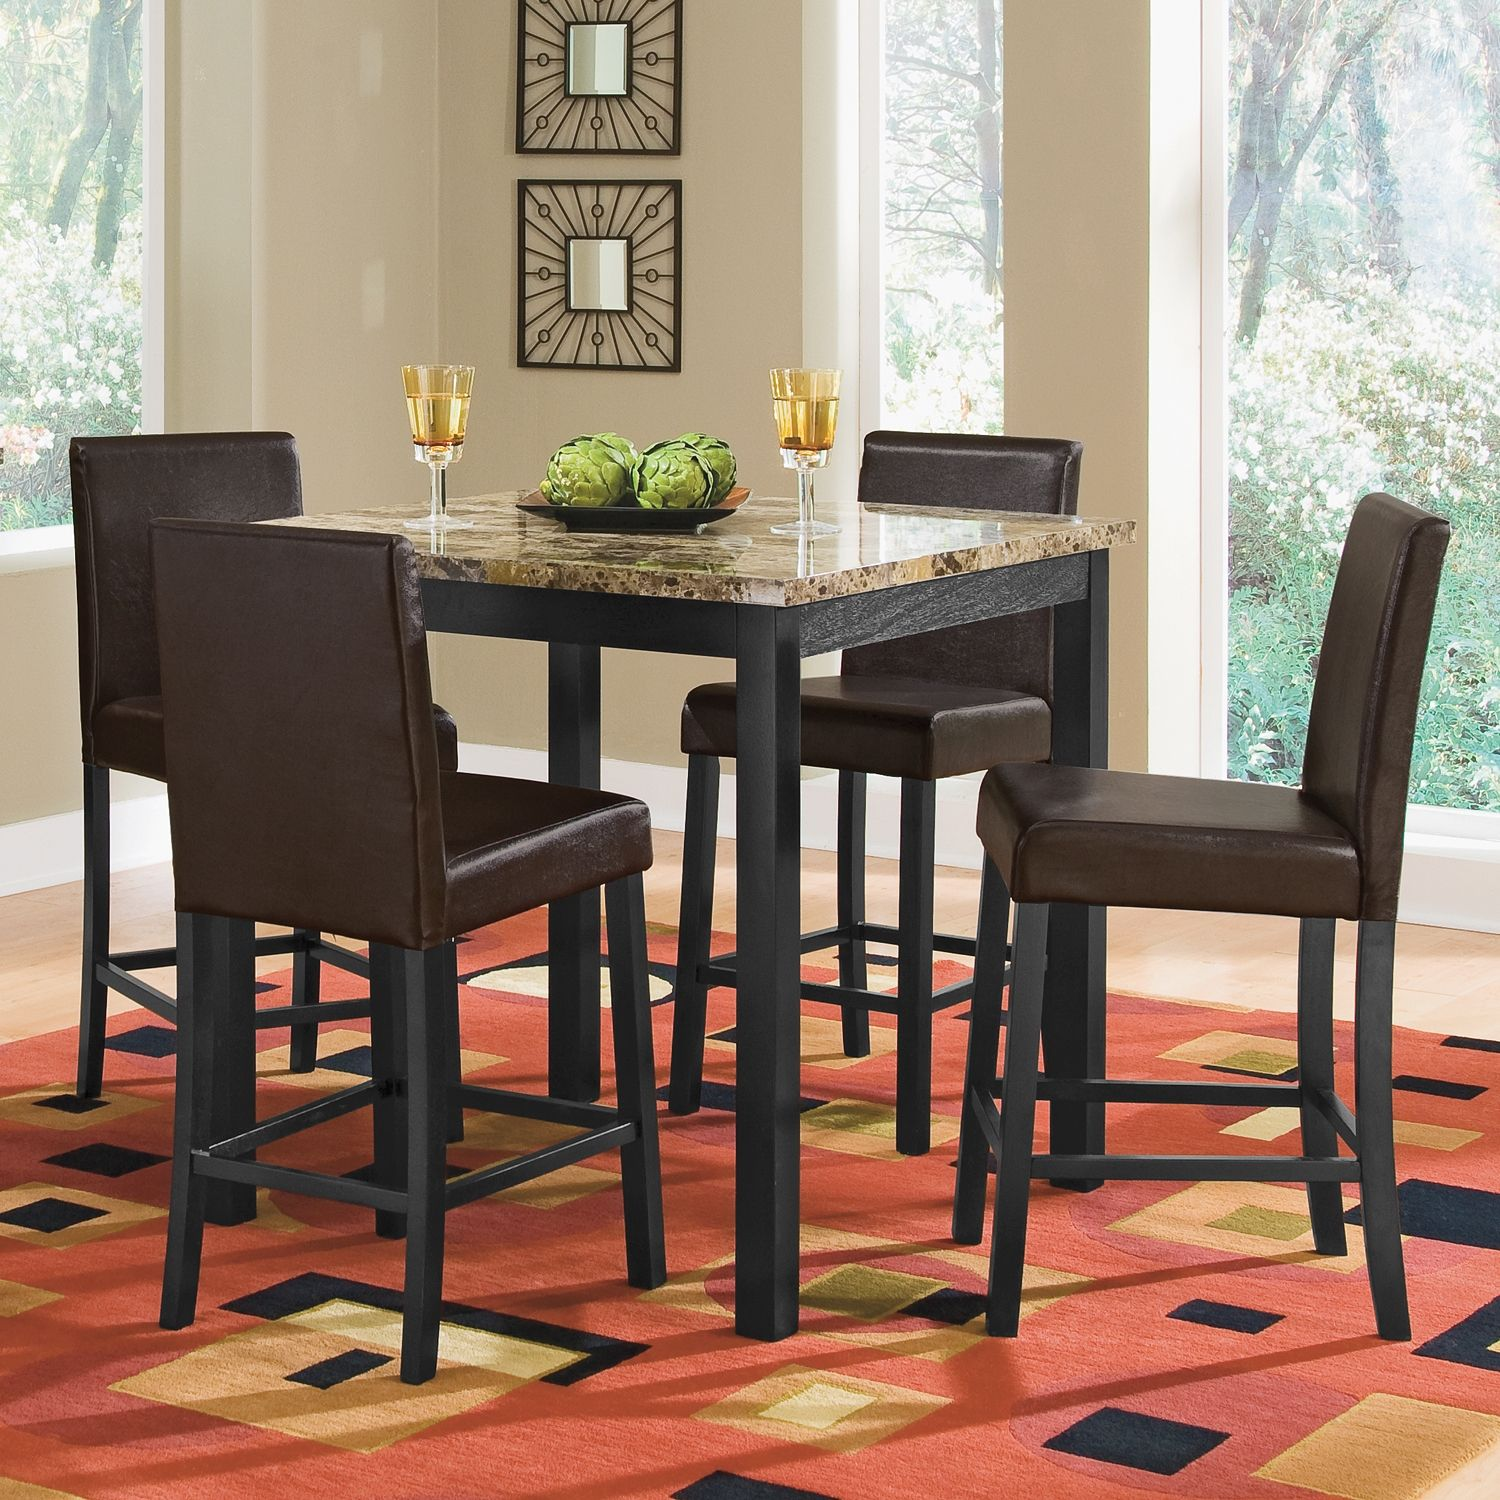 Keystone II Dining Room Counter Height Table   Value City ...